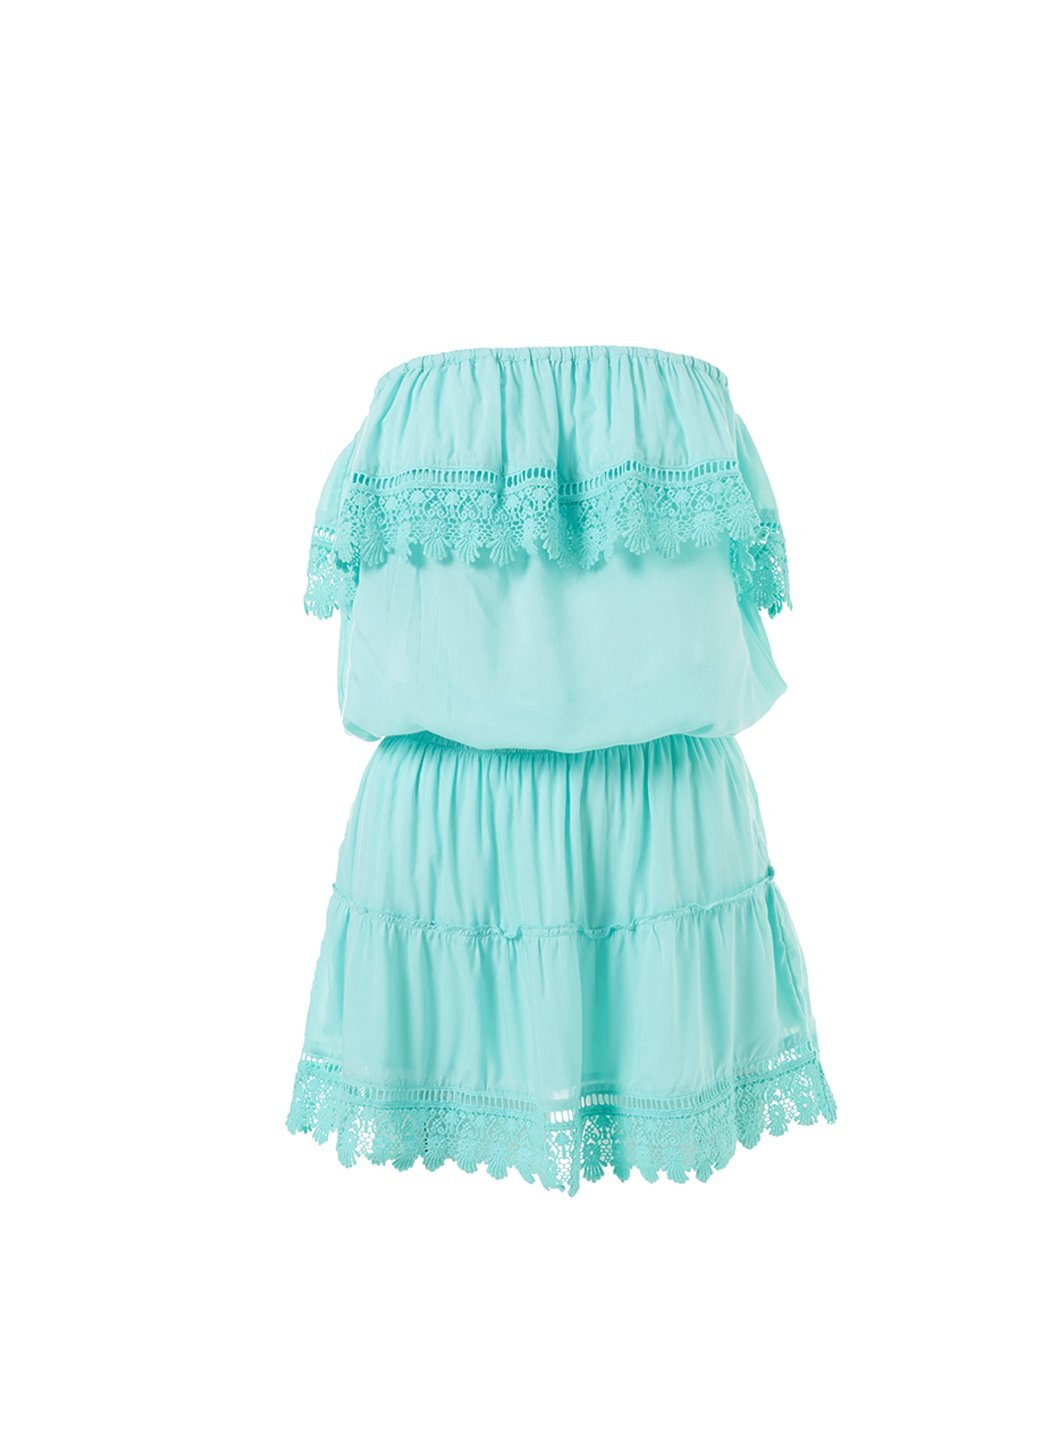 joy sky bandeau embroidered frill short dress 2019